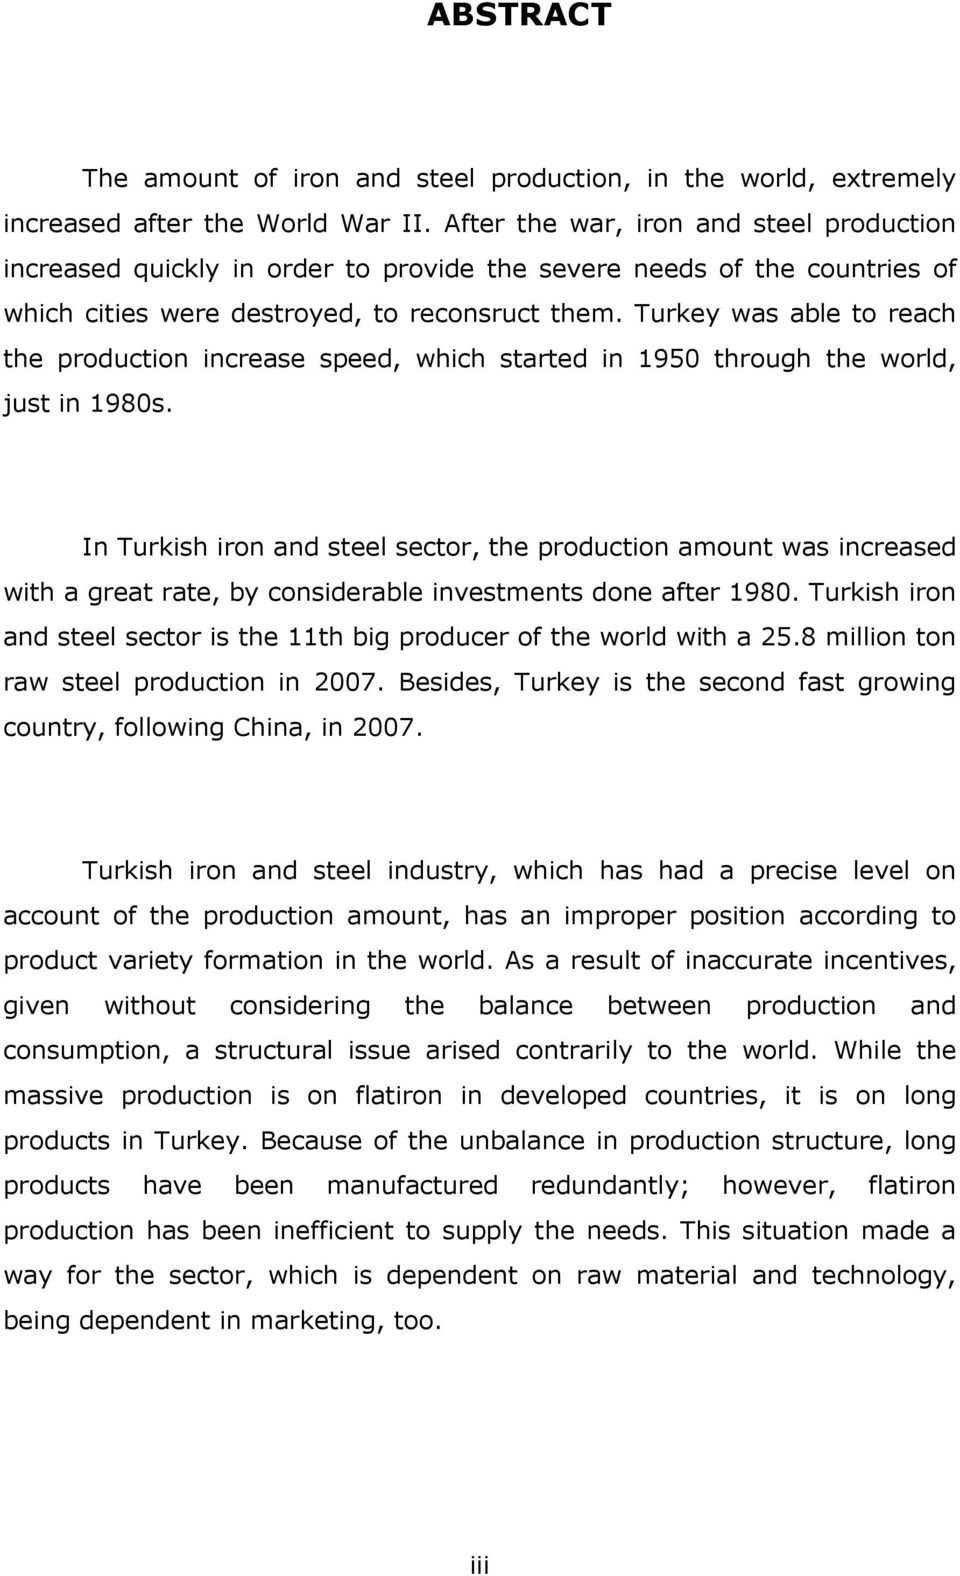 Turkey was able to reach the production increase speed, which started in 1950 through the world, just in 1980s.